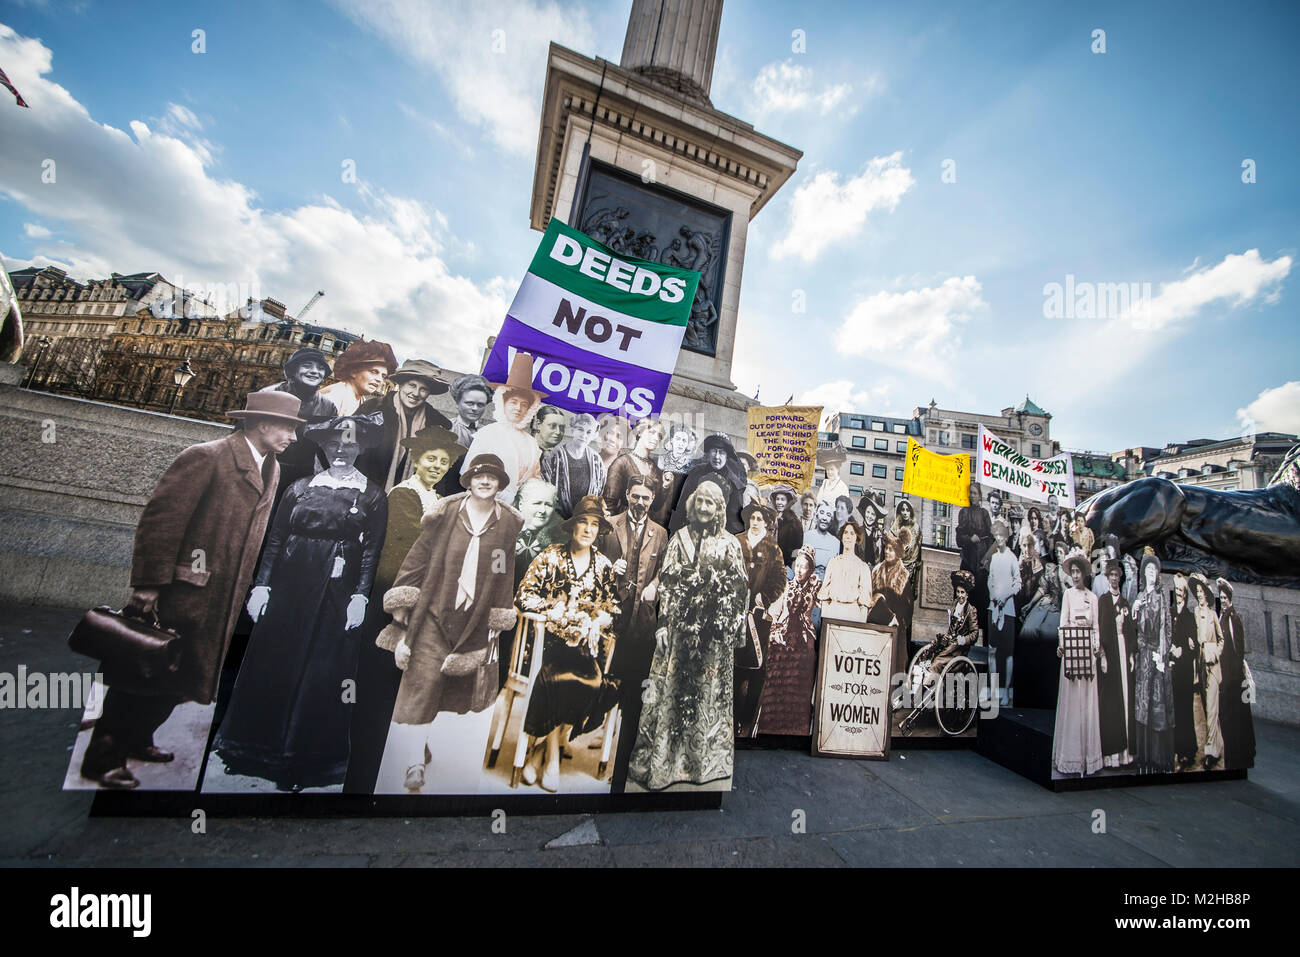 A montage of influential women in the suffrage struggle, in Trafalgar Square part of Sadiq Khan's #BehindEveryGreatCity - Stock Image